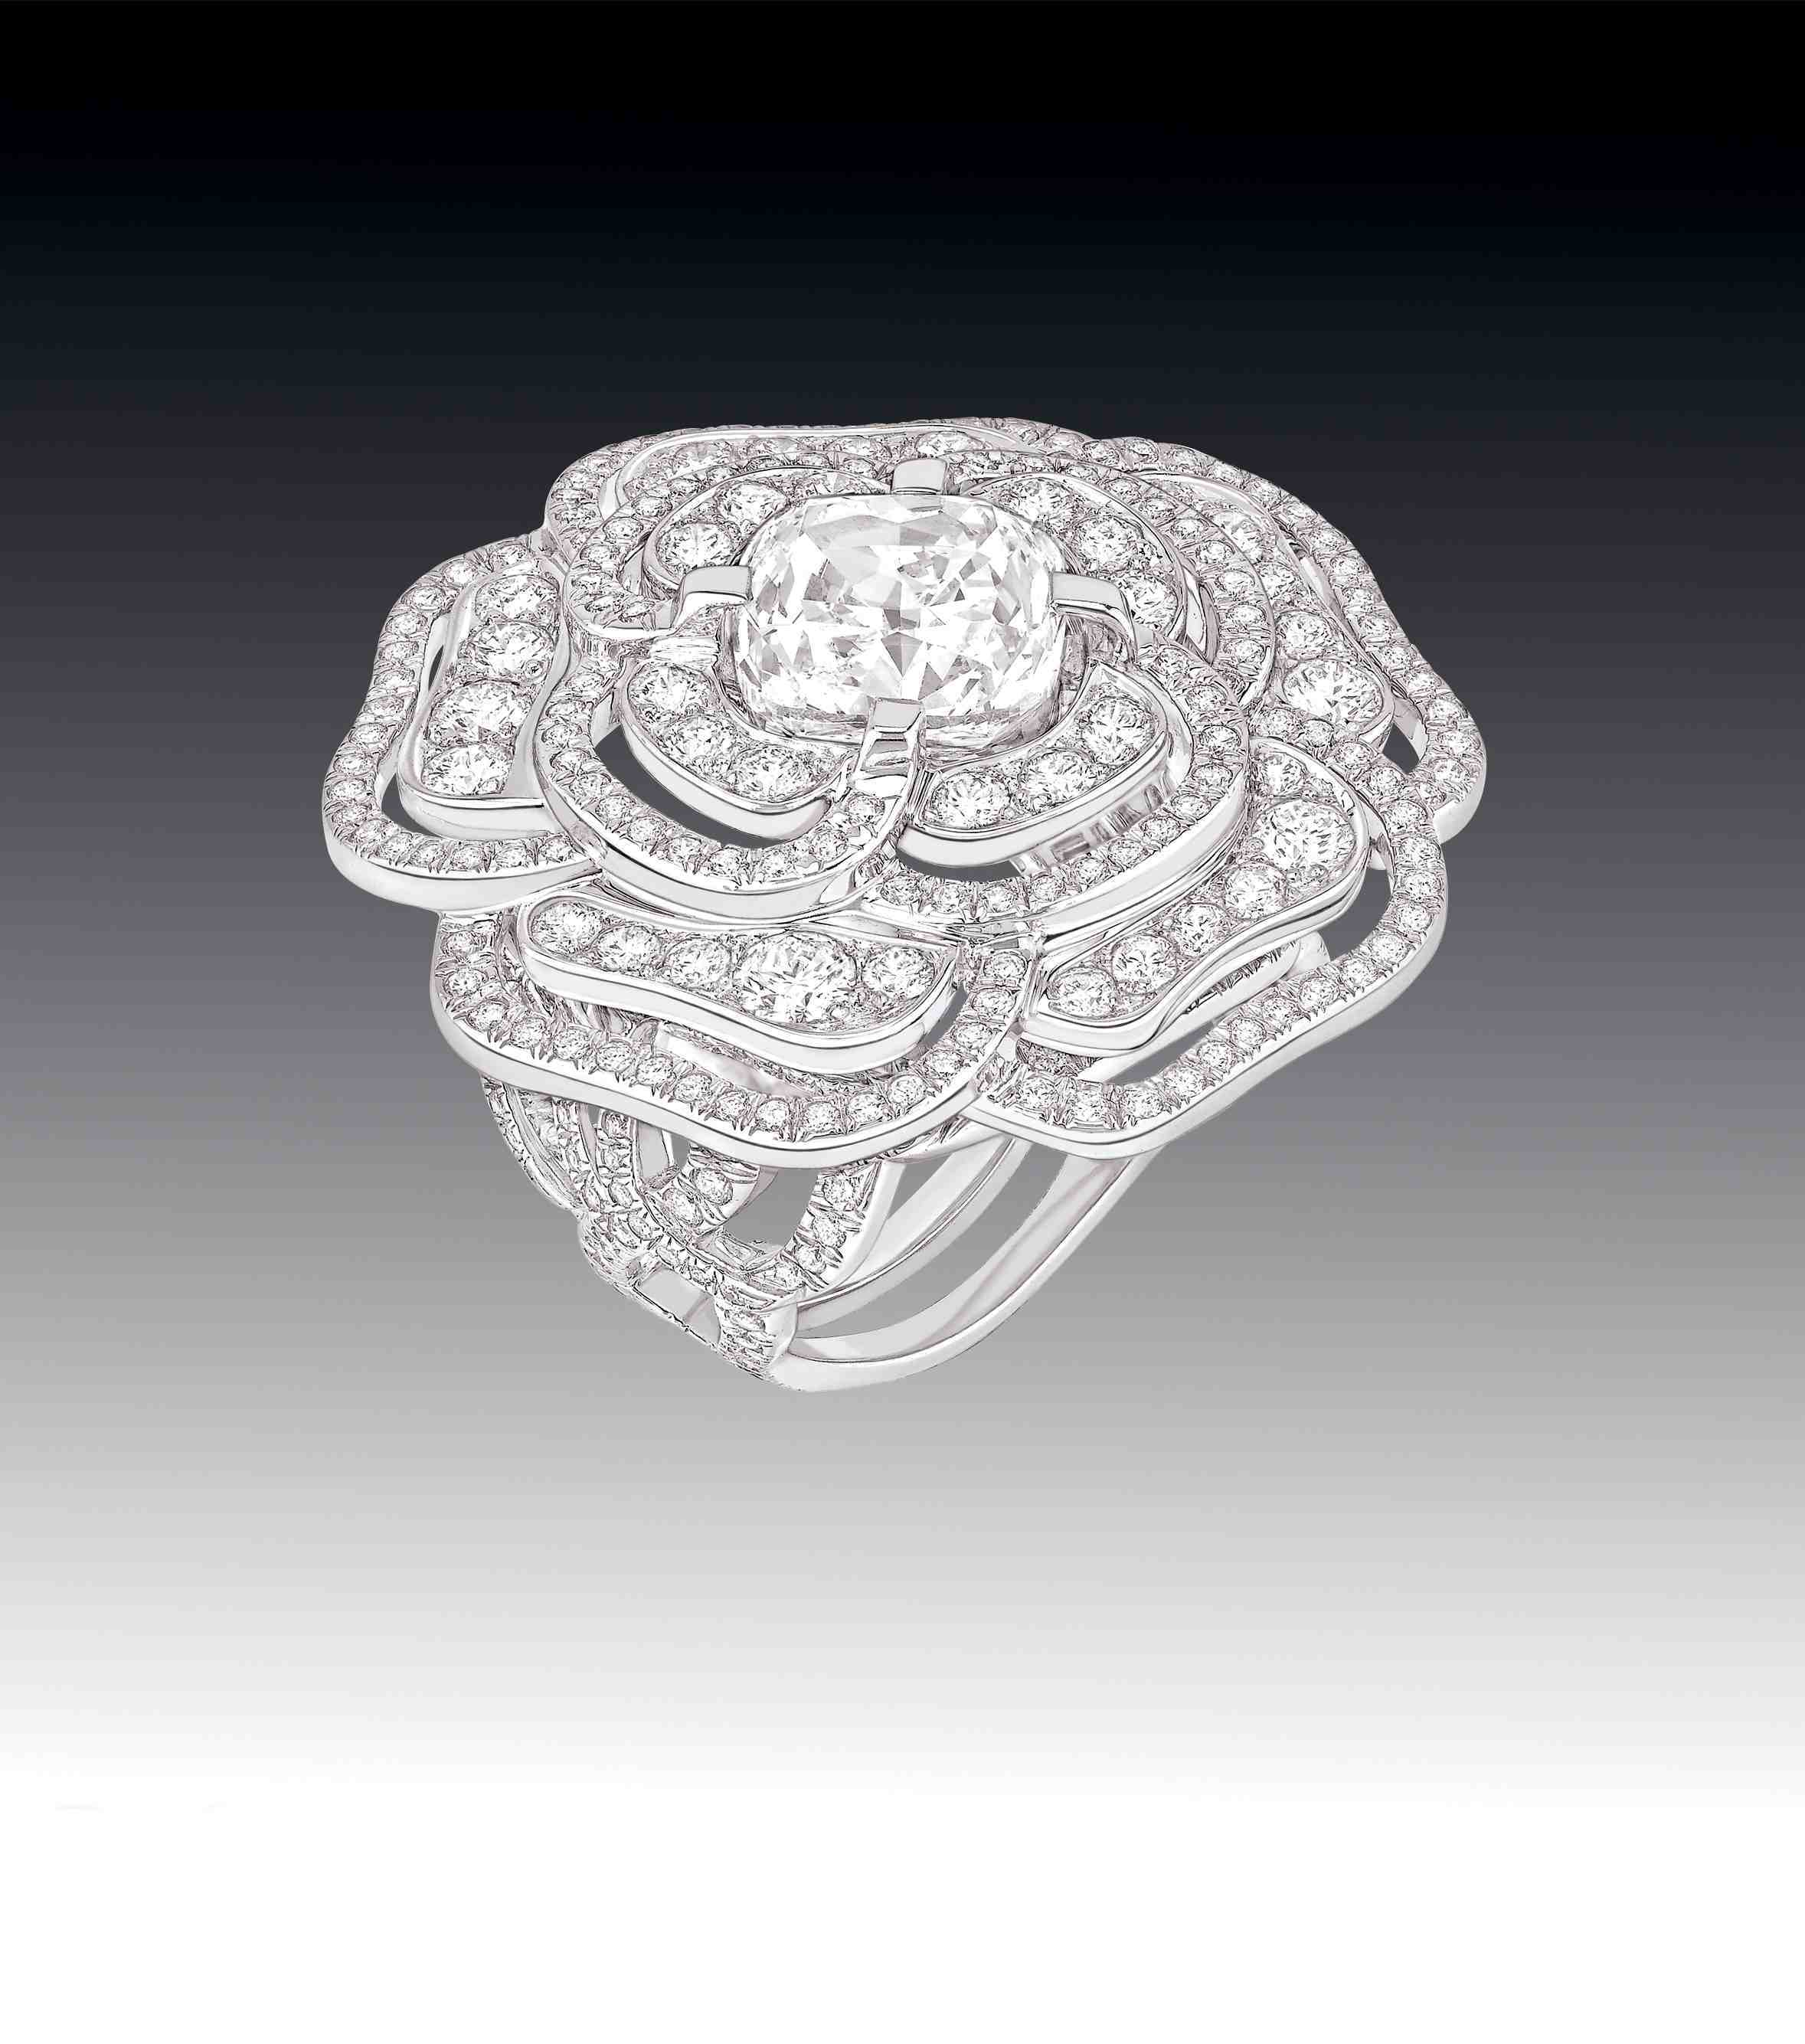 inspired by the chanel camellia � fashionplate